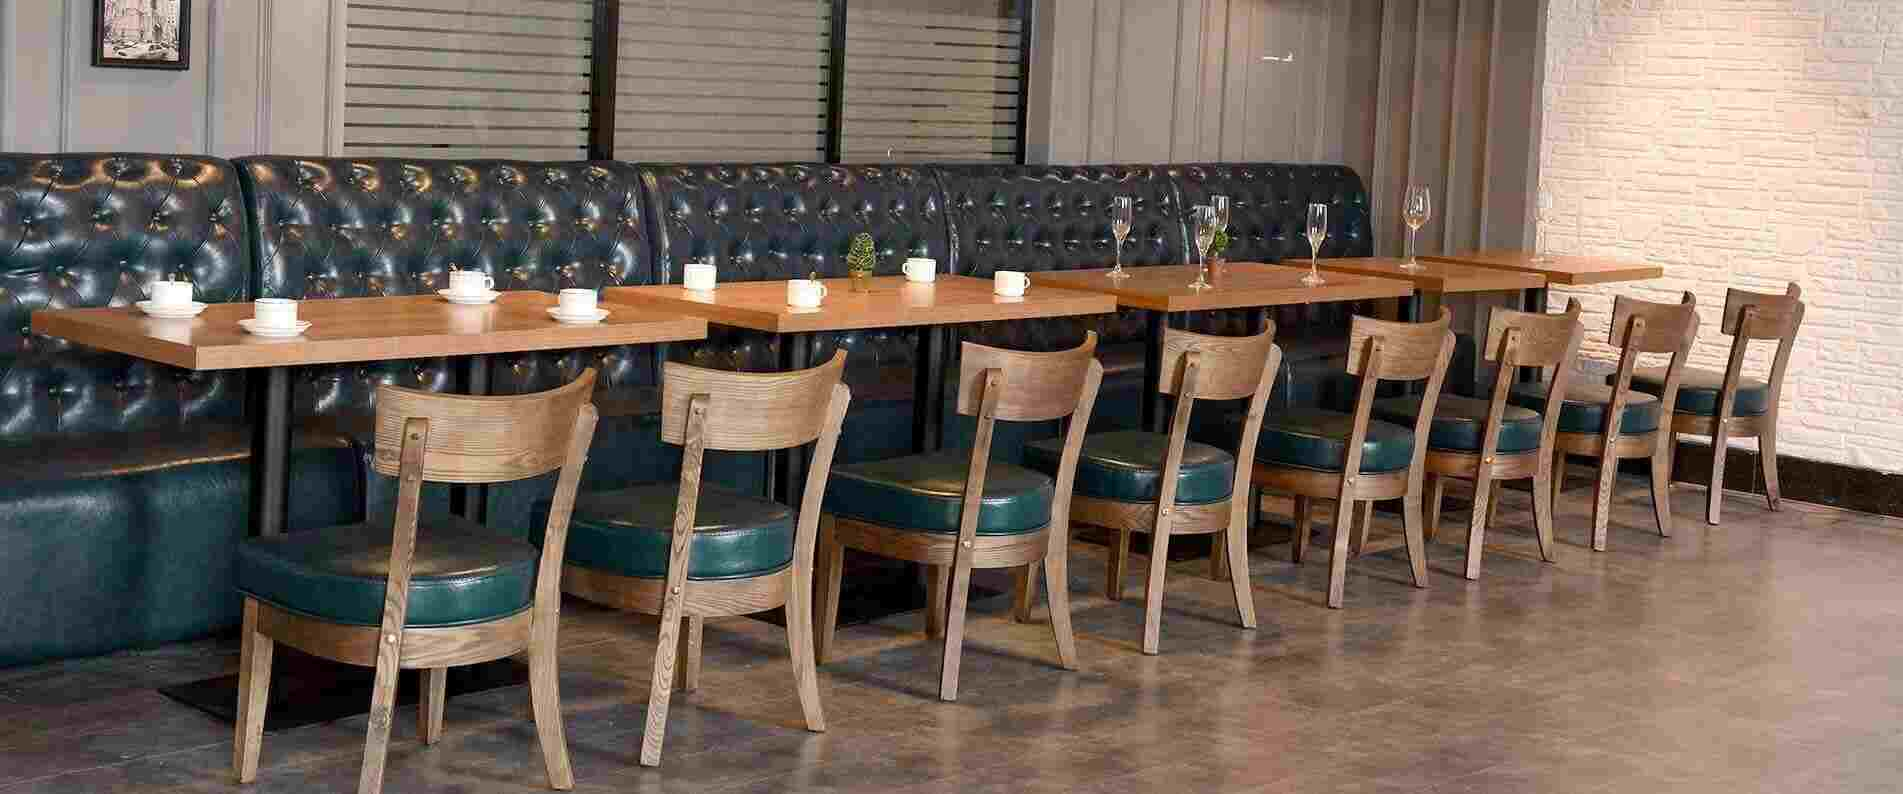 Uruguay Restaurant furniture